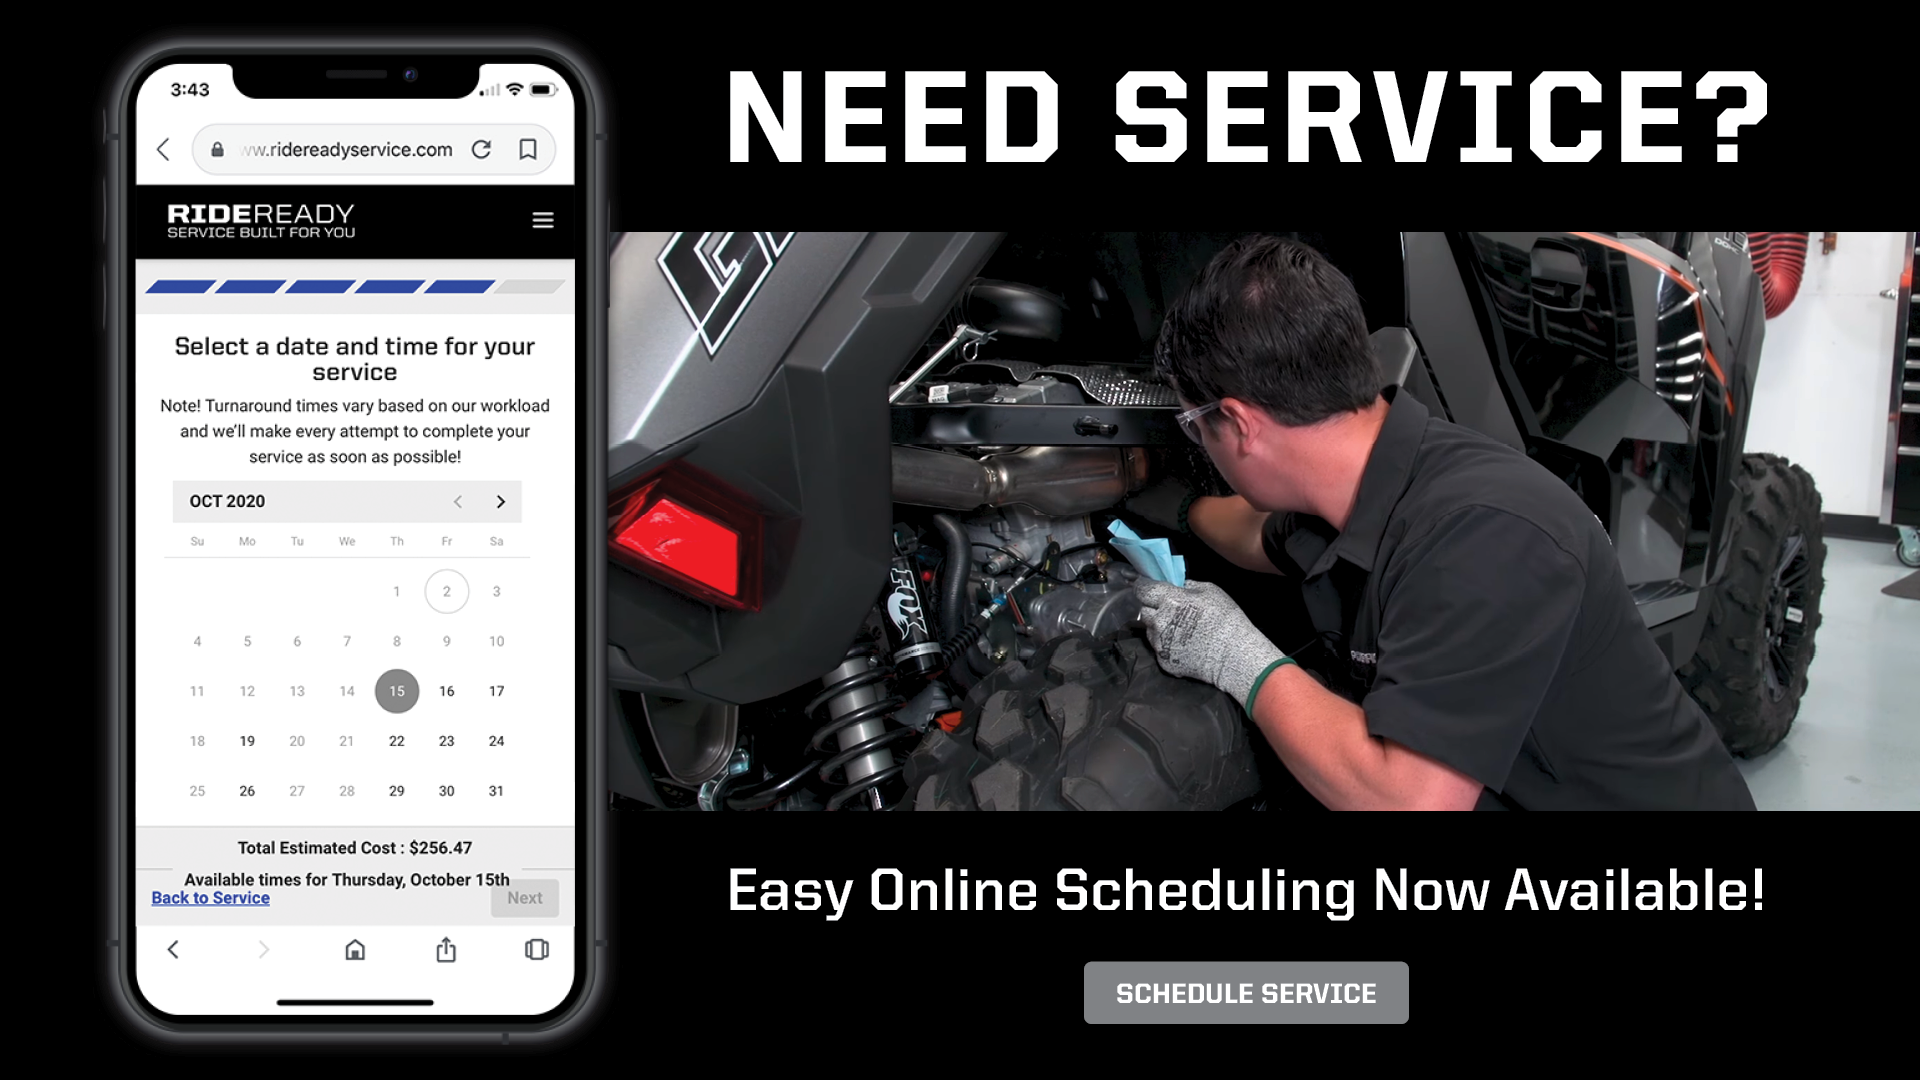 Schedule Your Service!